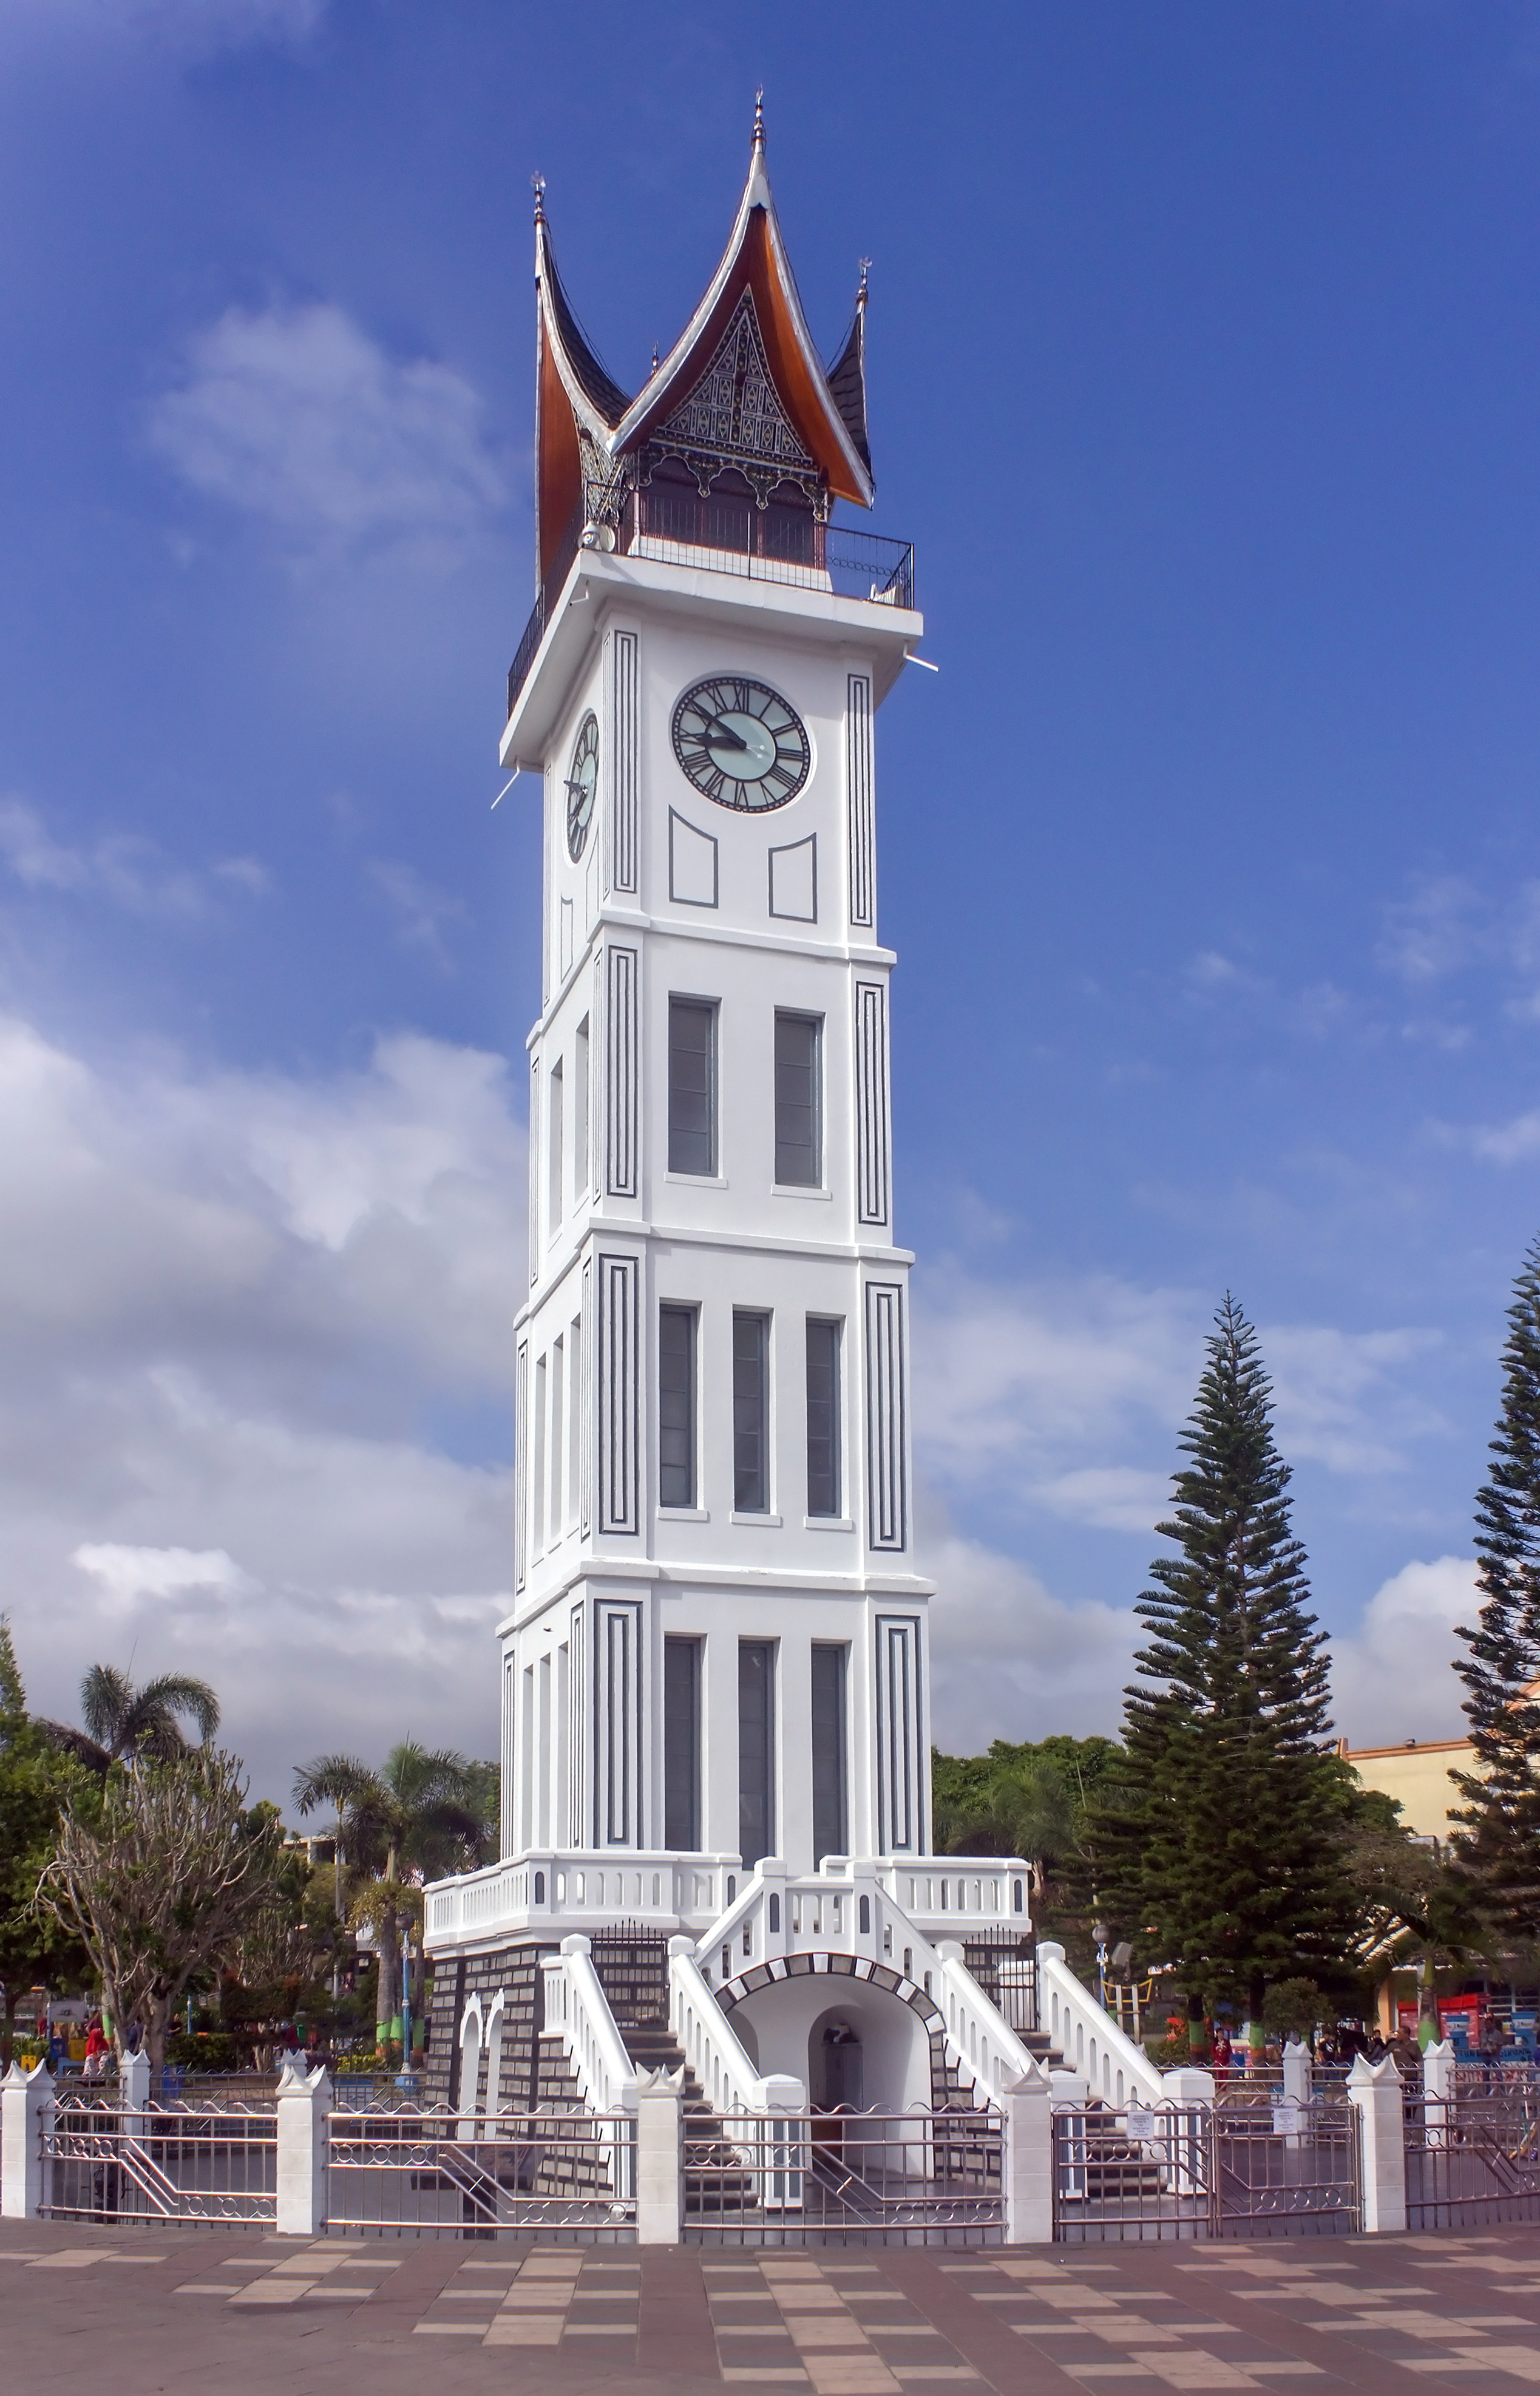 Wikimedia Commons: File:Jam Gadang, Bukittinggi, 2016-02-12 01.jpg